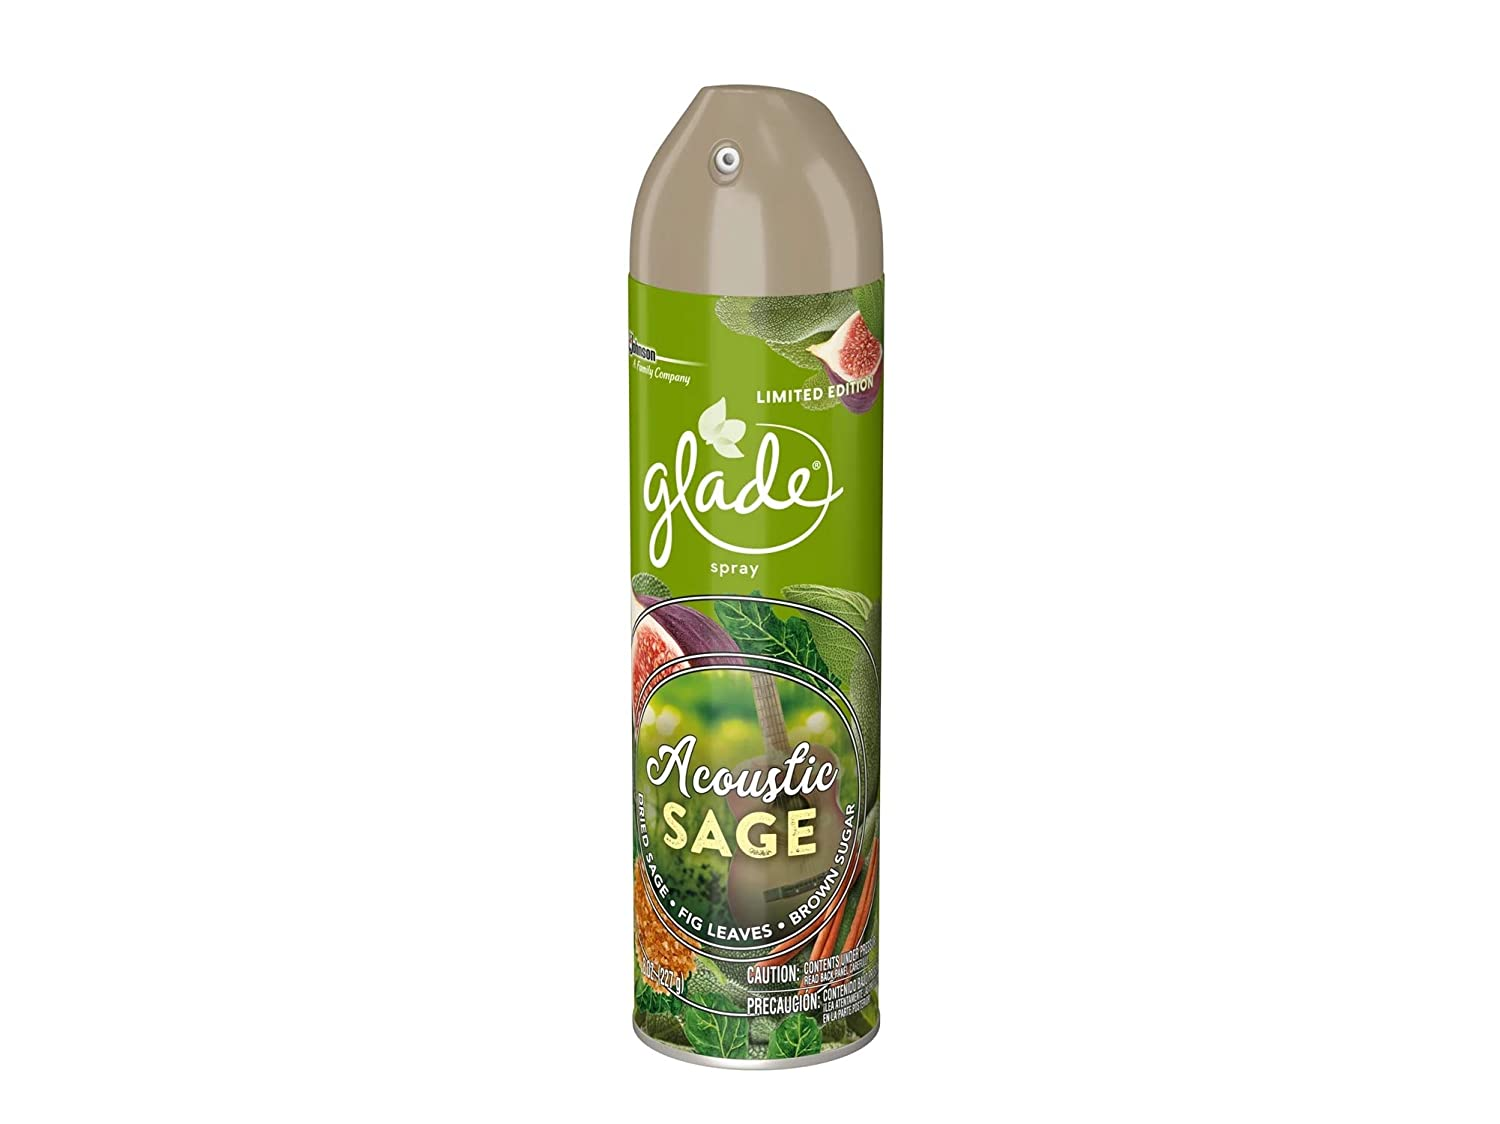 Glade Acoustic Sage Limited Edition Air Freshener Spray - 8oz